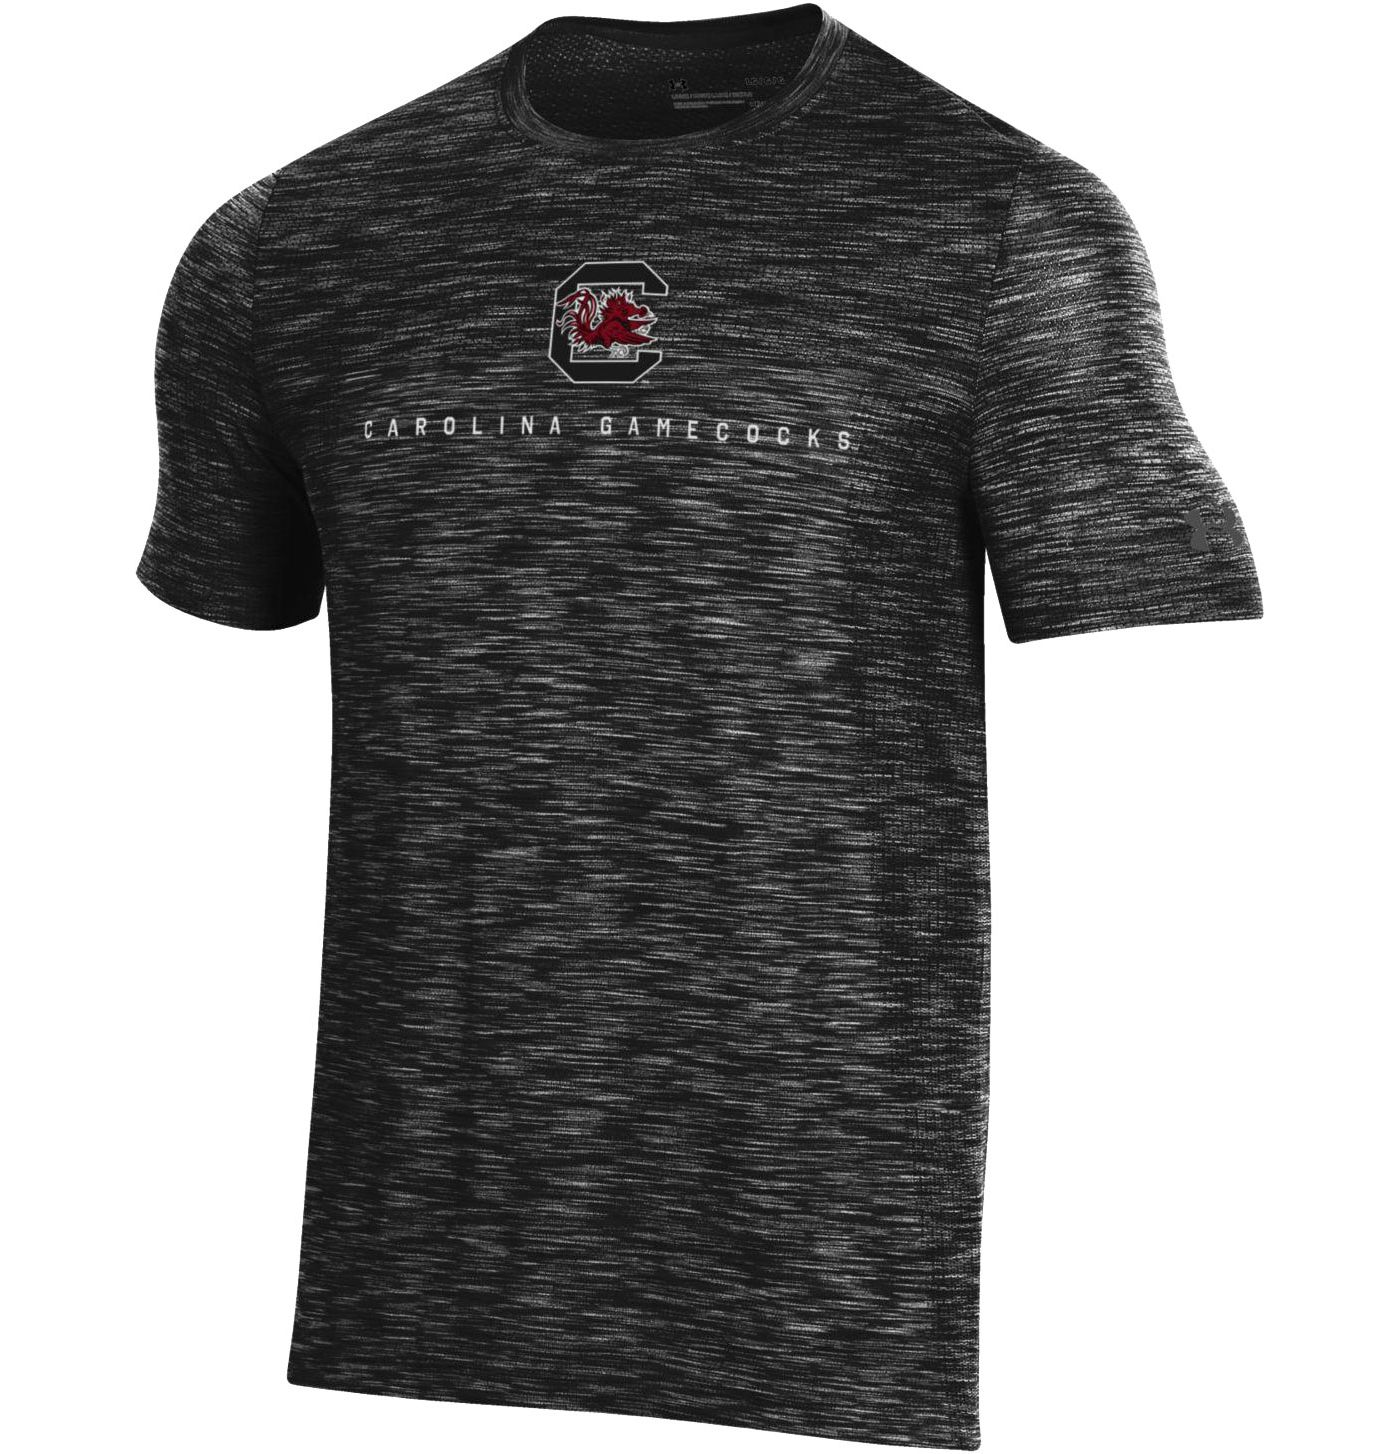 Under Armour Men's South Carolina Gamecocks Vanish Performance Black T-Shirt